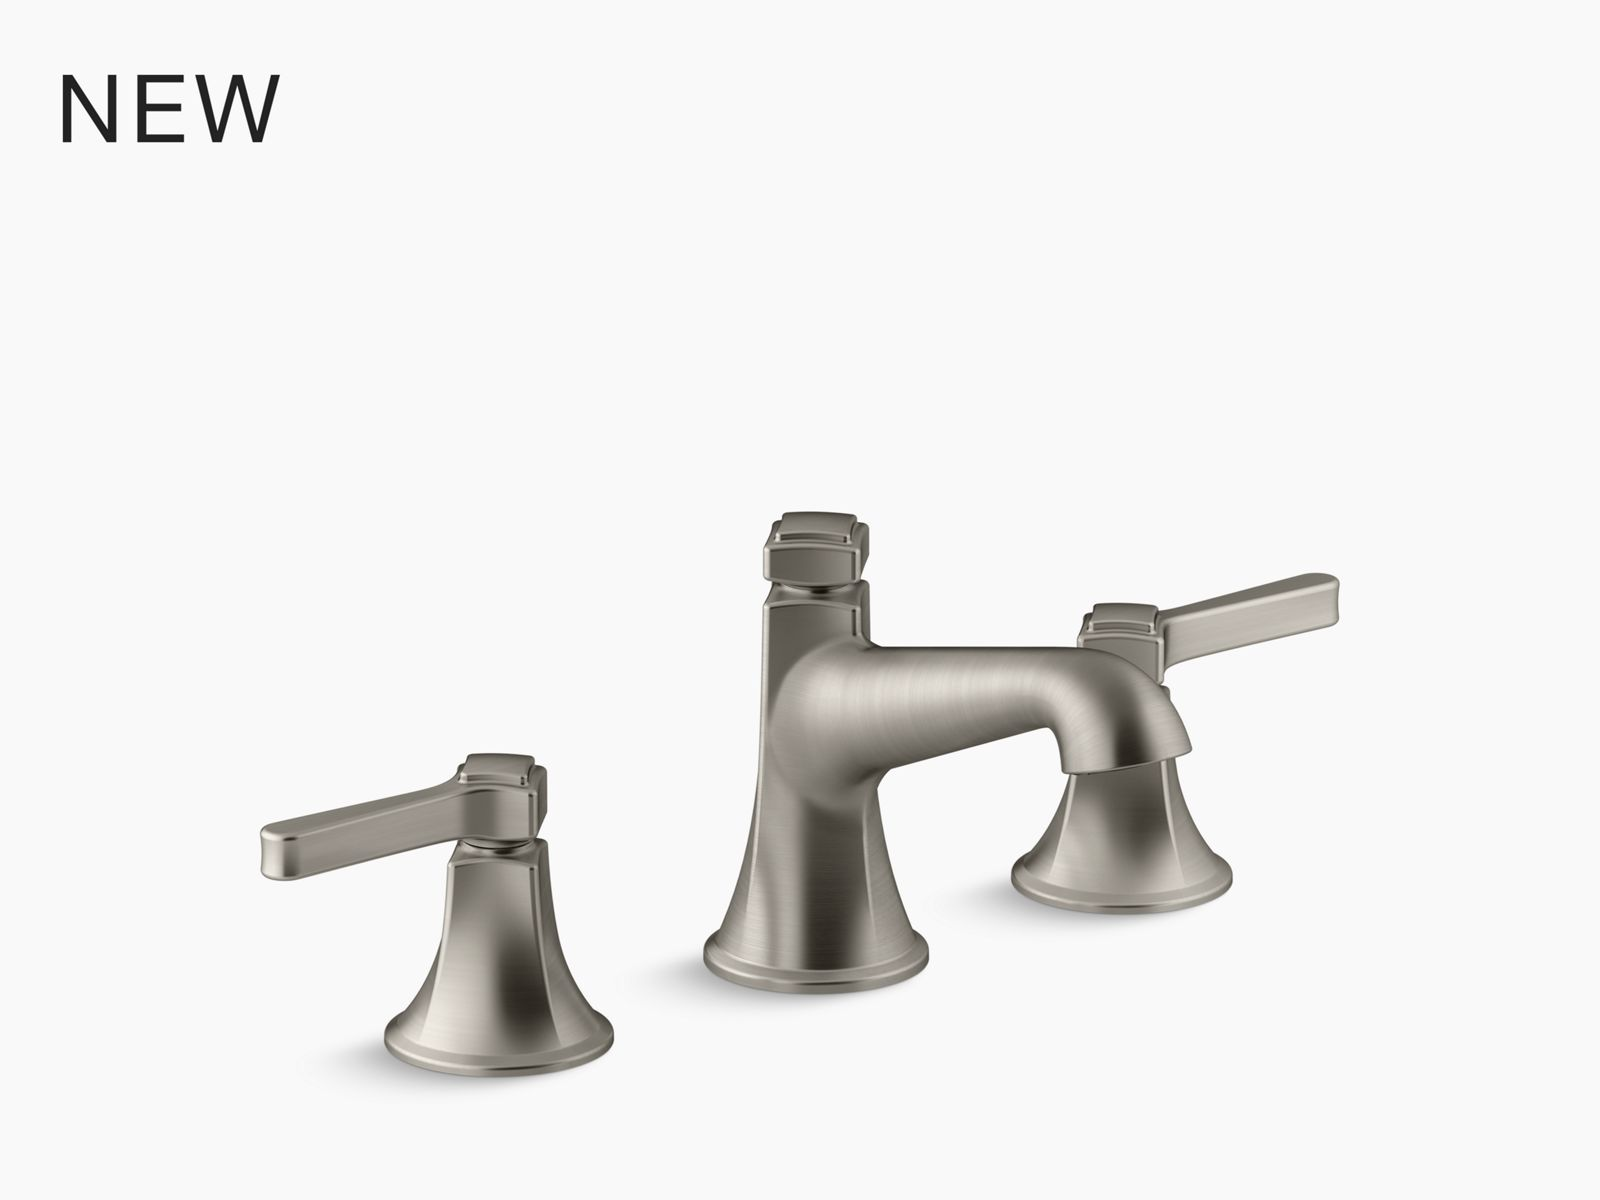 coralais three hole kitchen sink faucet with 8 1 2 spout and lever handle